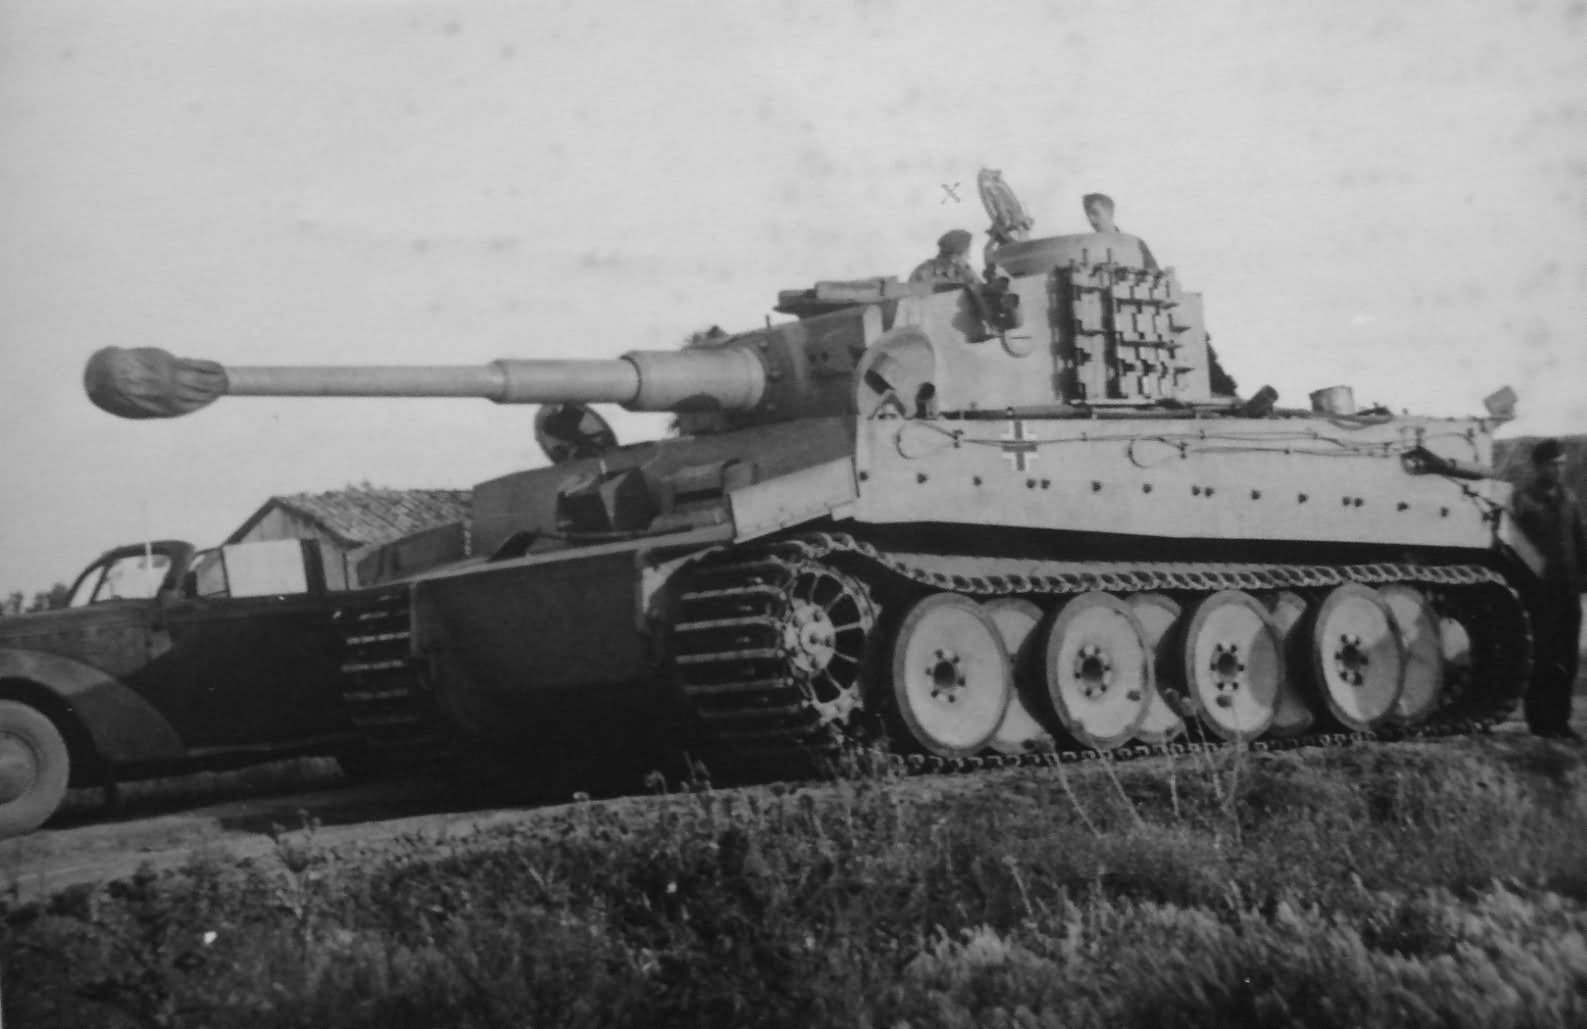 Tiger I ausf H with track links bolted to the side of the turret